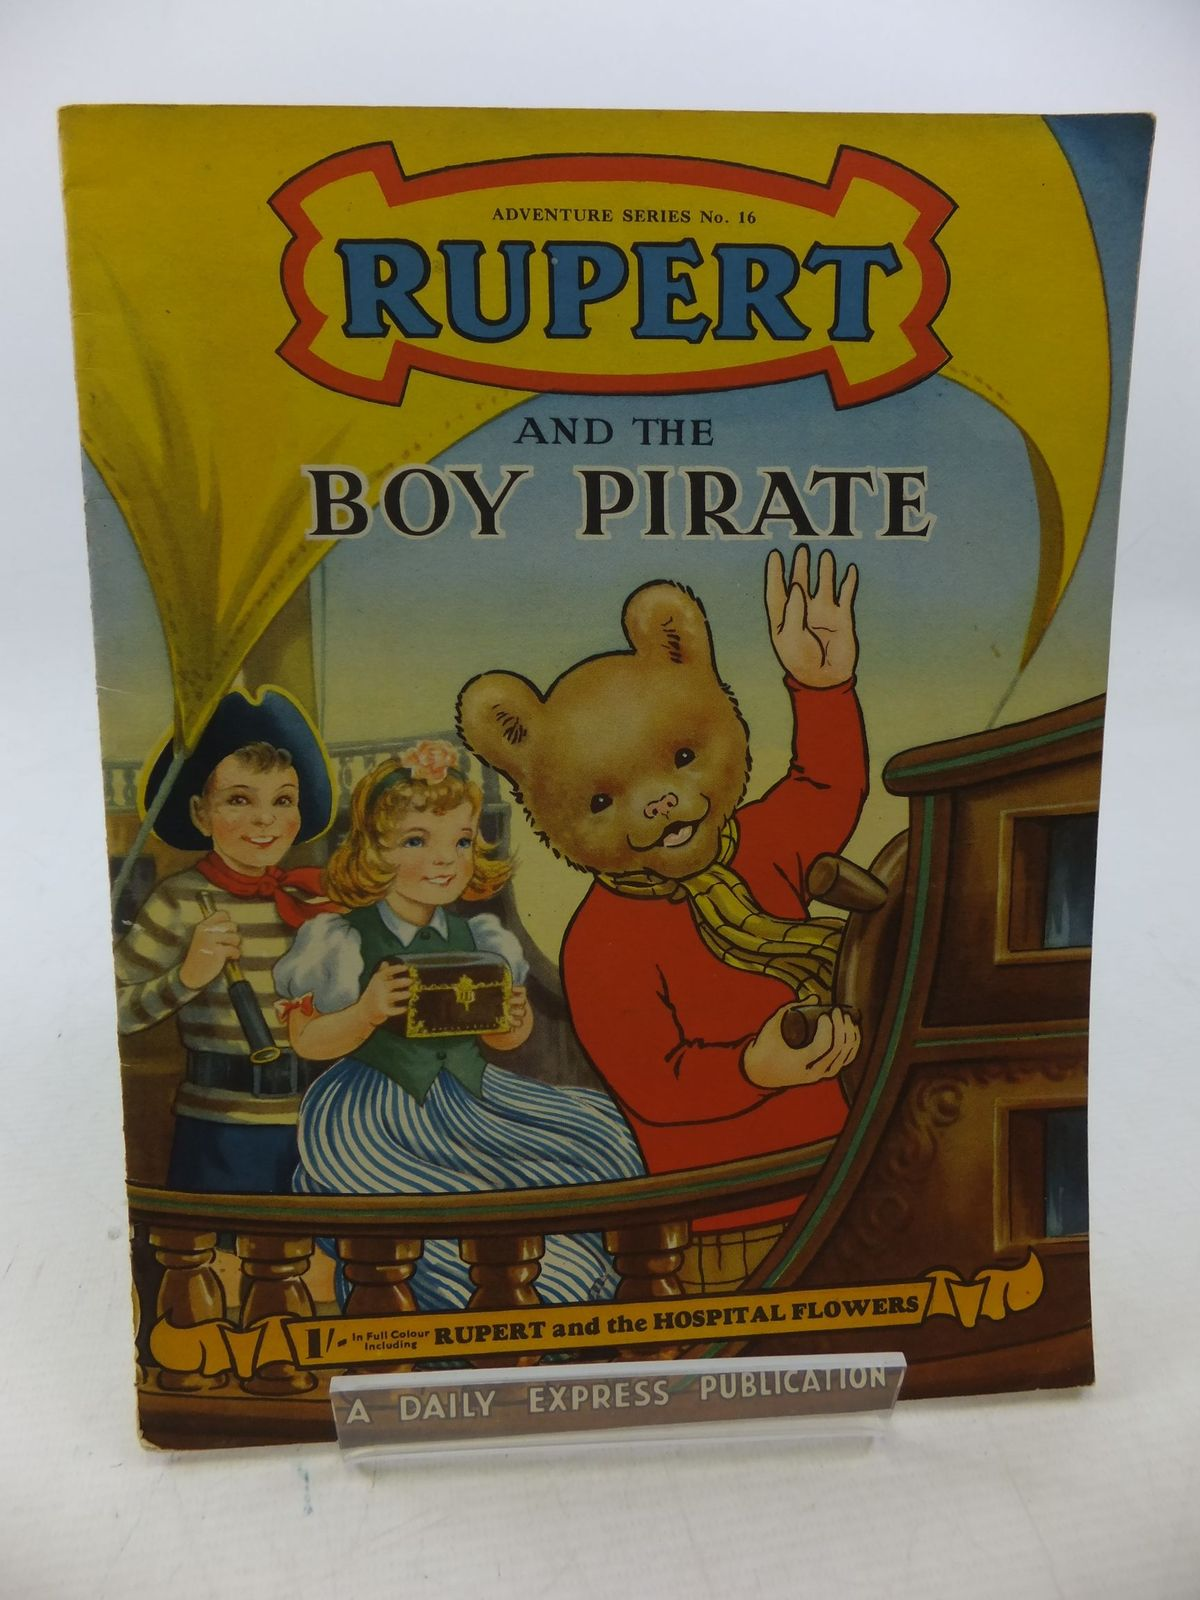 Photo of RUPERT ADVENTURE SERIES No. 16 - RUPERT AND THE BOY PIRATE written by Bestall, Alfred published by Daily Express (STOCK CODE: 2114370)  for sale by Stella & Rose's Books